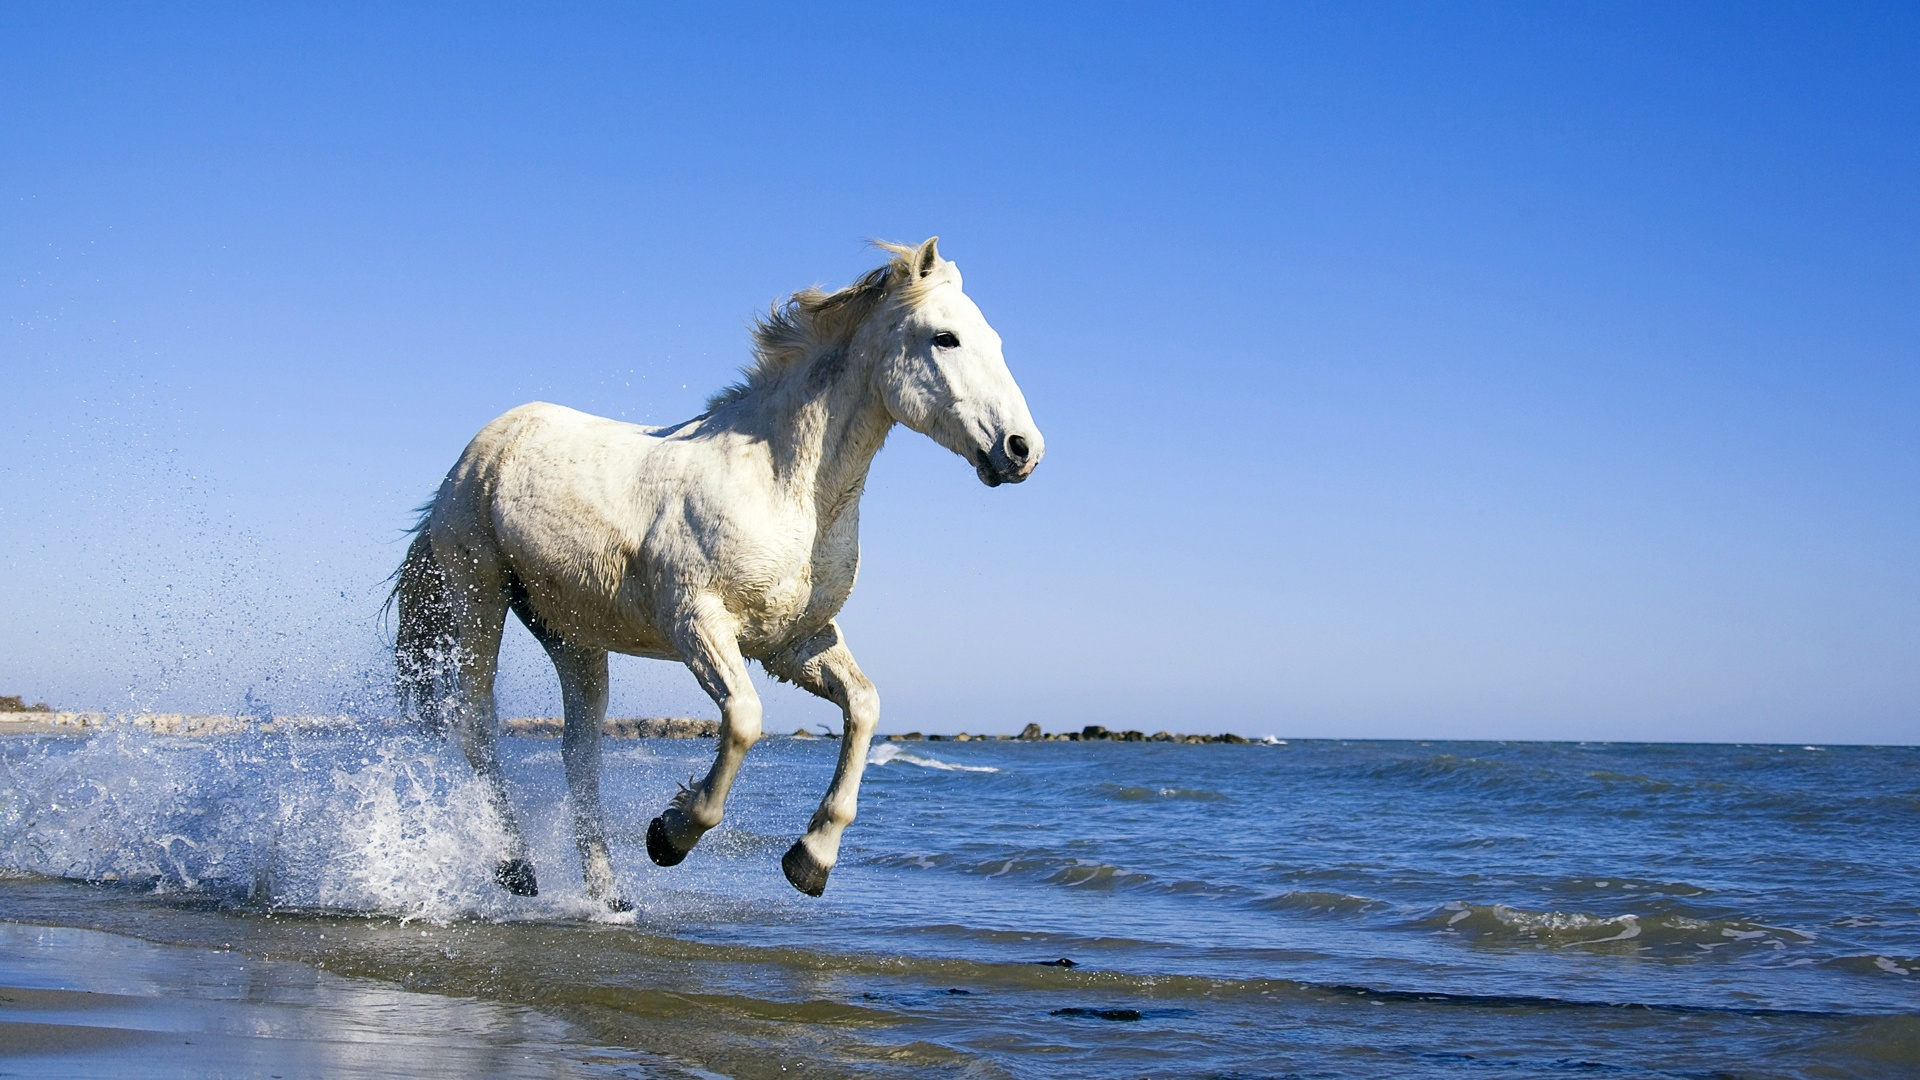 White running horses - photo#27